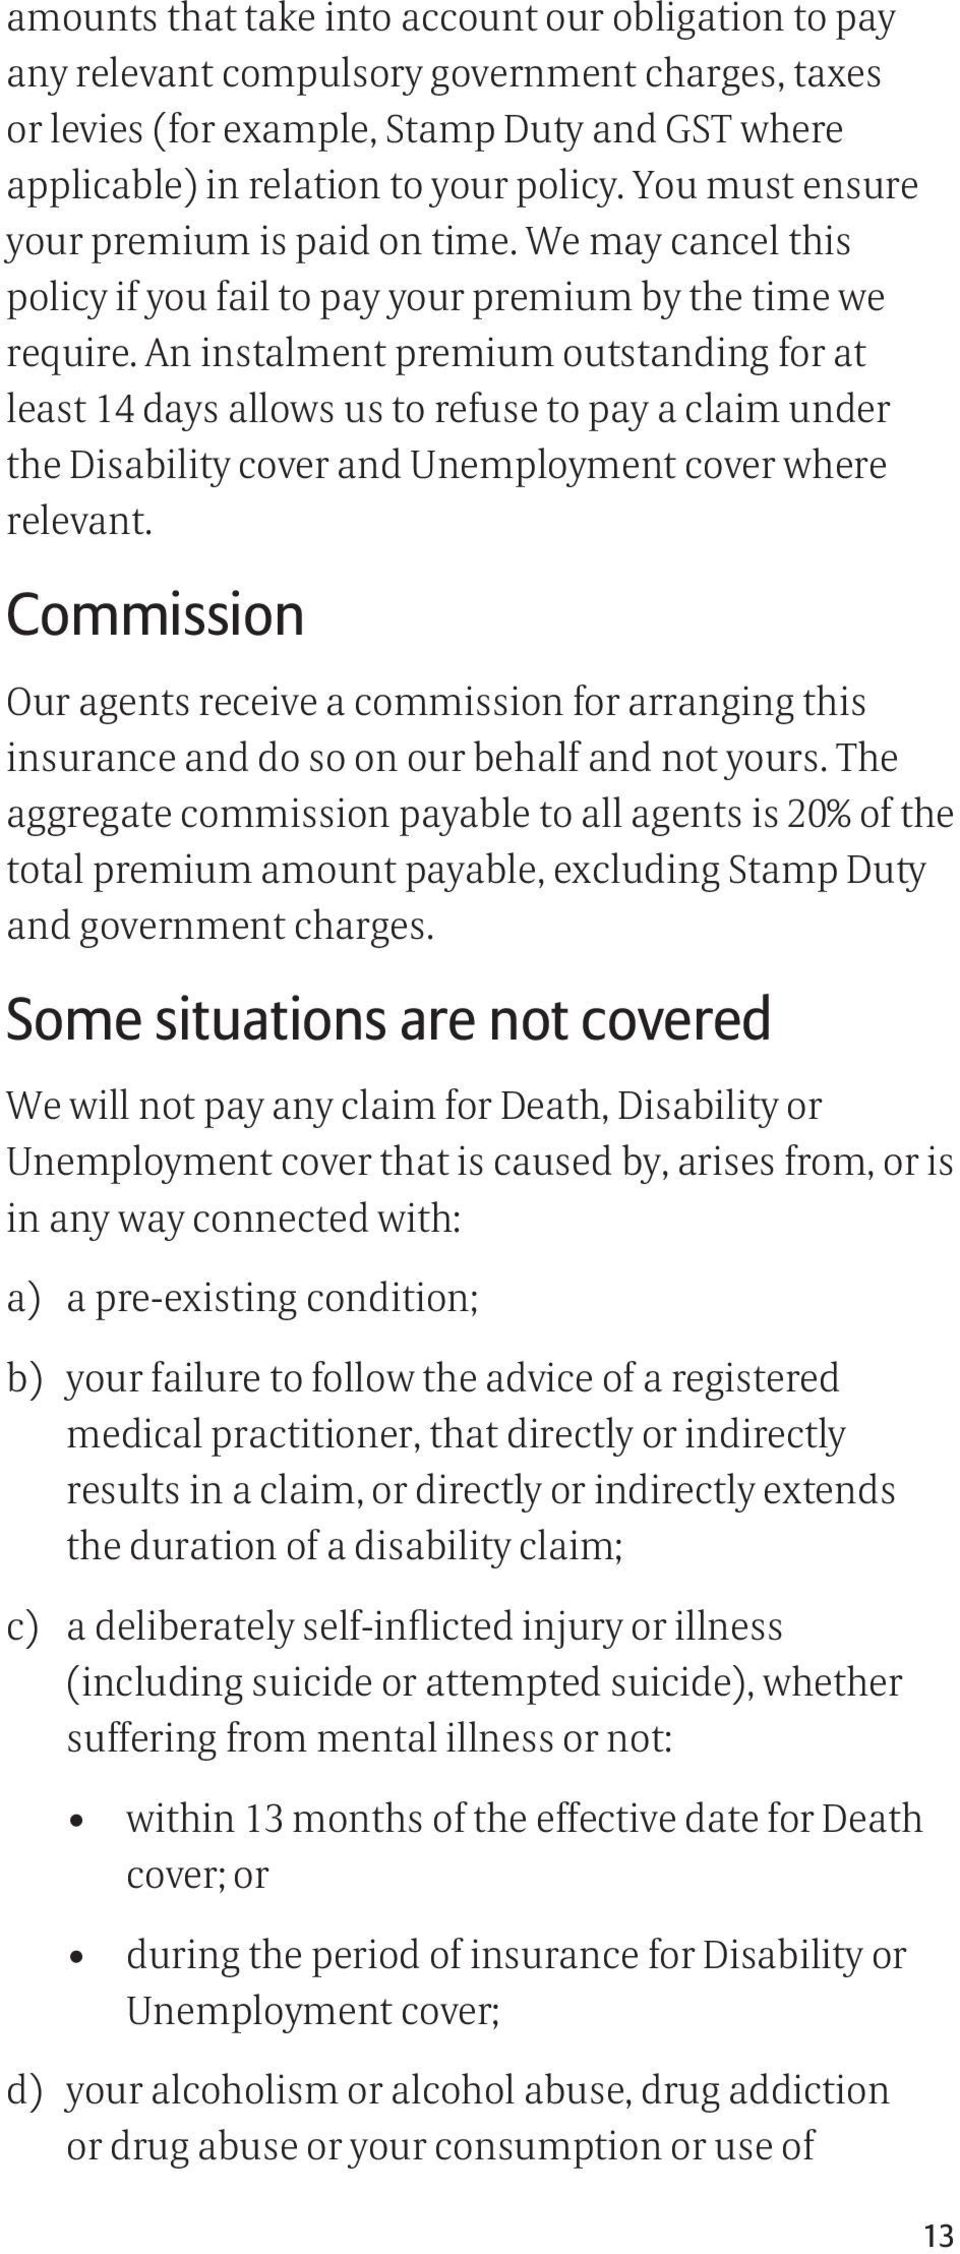 An instalment premium outstanding for at least 14 days allows us to refuse to pay a claim under the Disability cover and Unemployment cover where relevant.